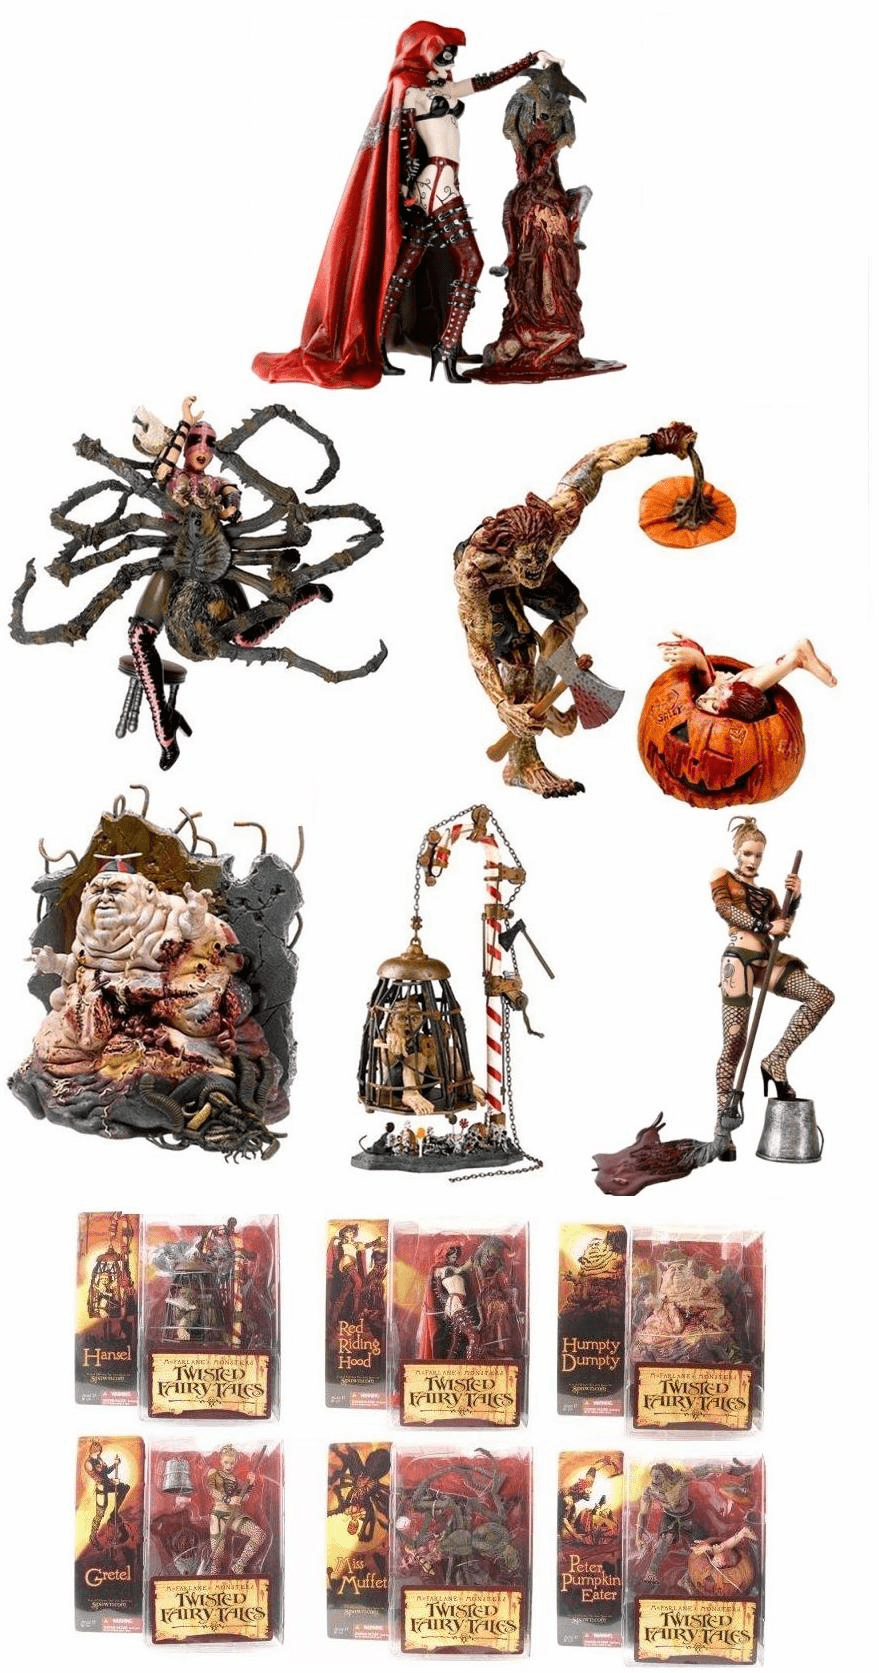 McFarlane Monsters Series 4 Twisted Fairy Tales Set